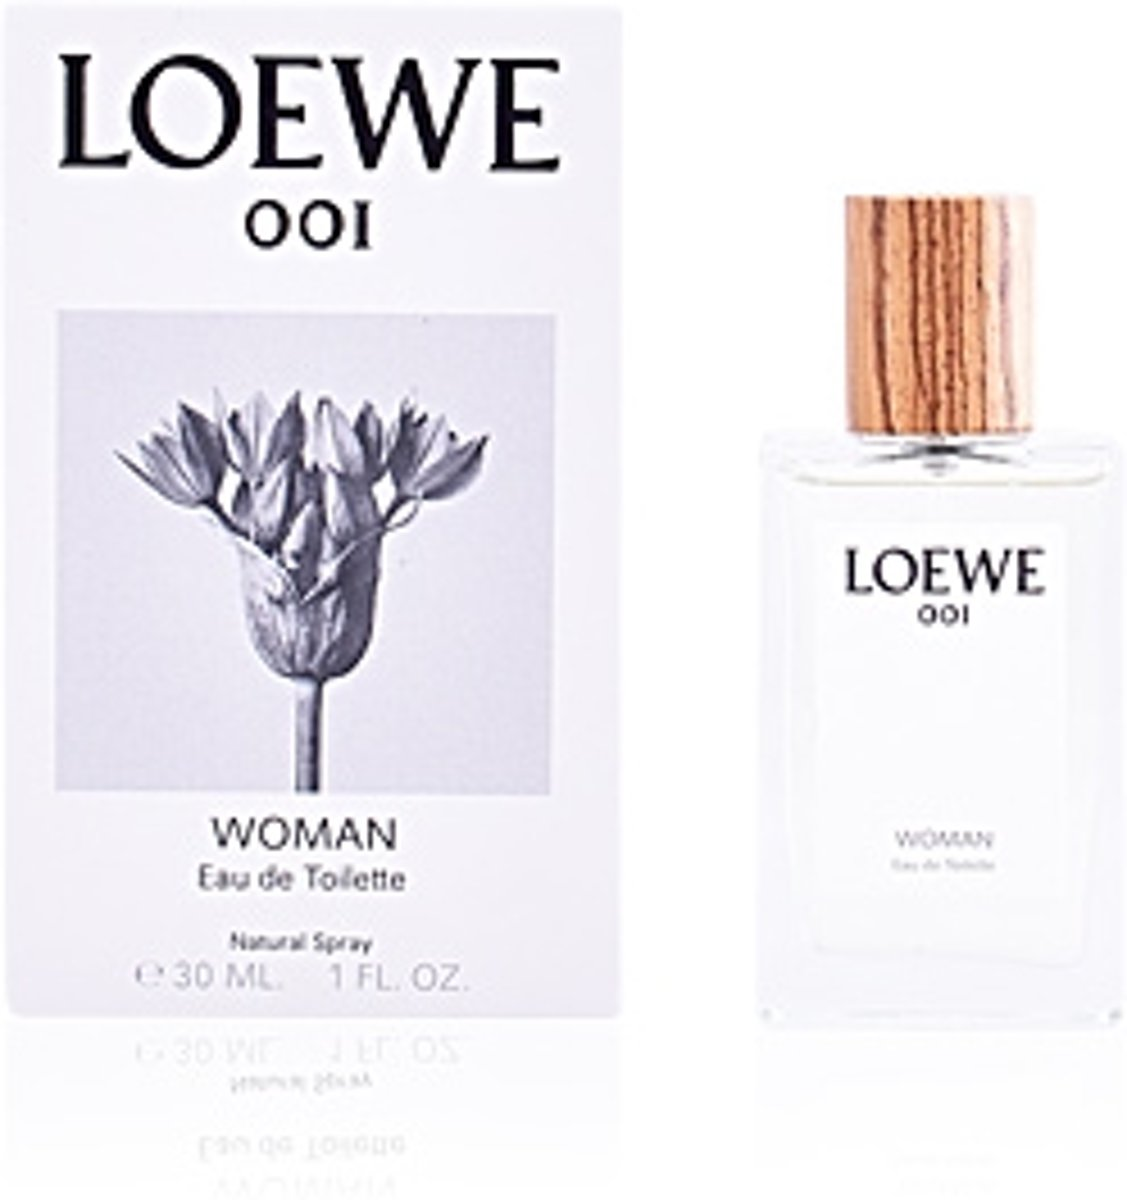 Loewe LOEWE 001 WOMAN edt spray 50 ml